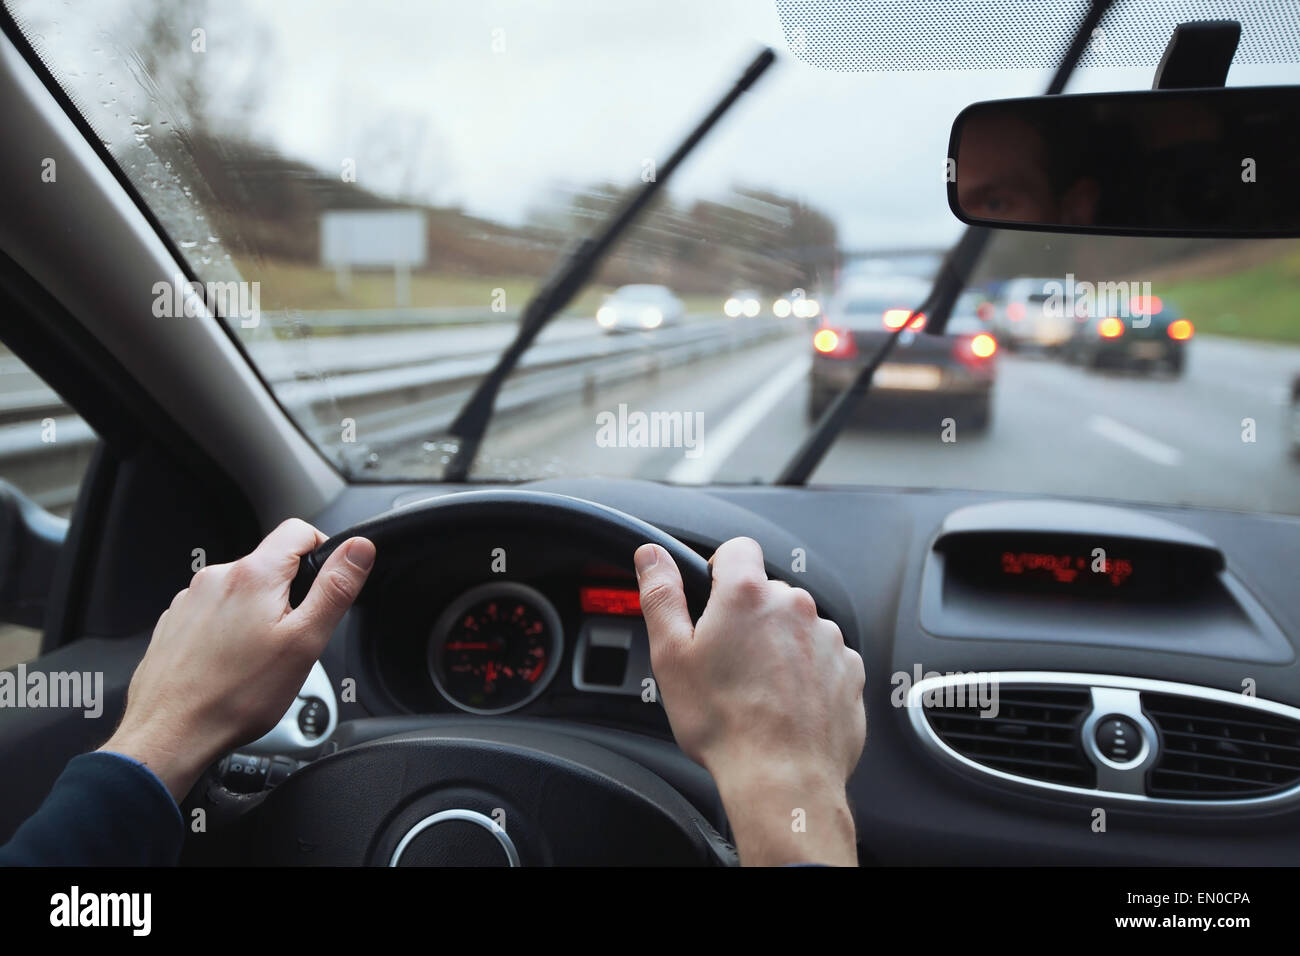 driving in hard weather conditions, rain on the windshield - Stock Image